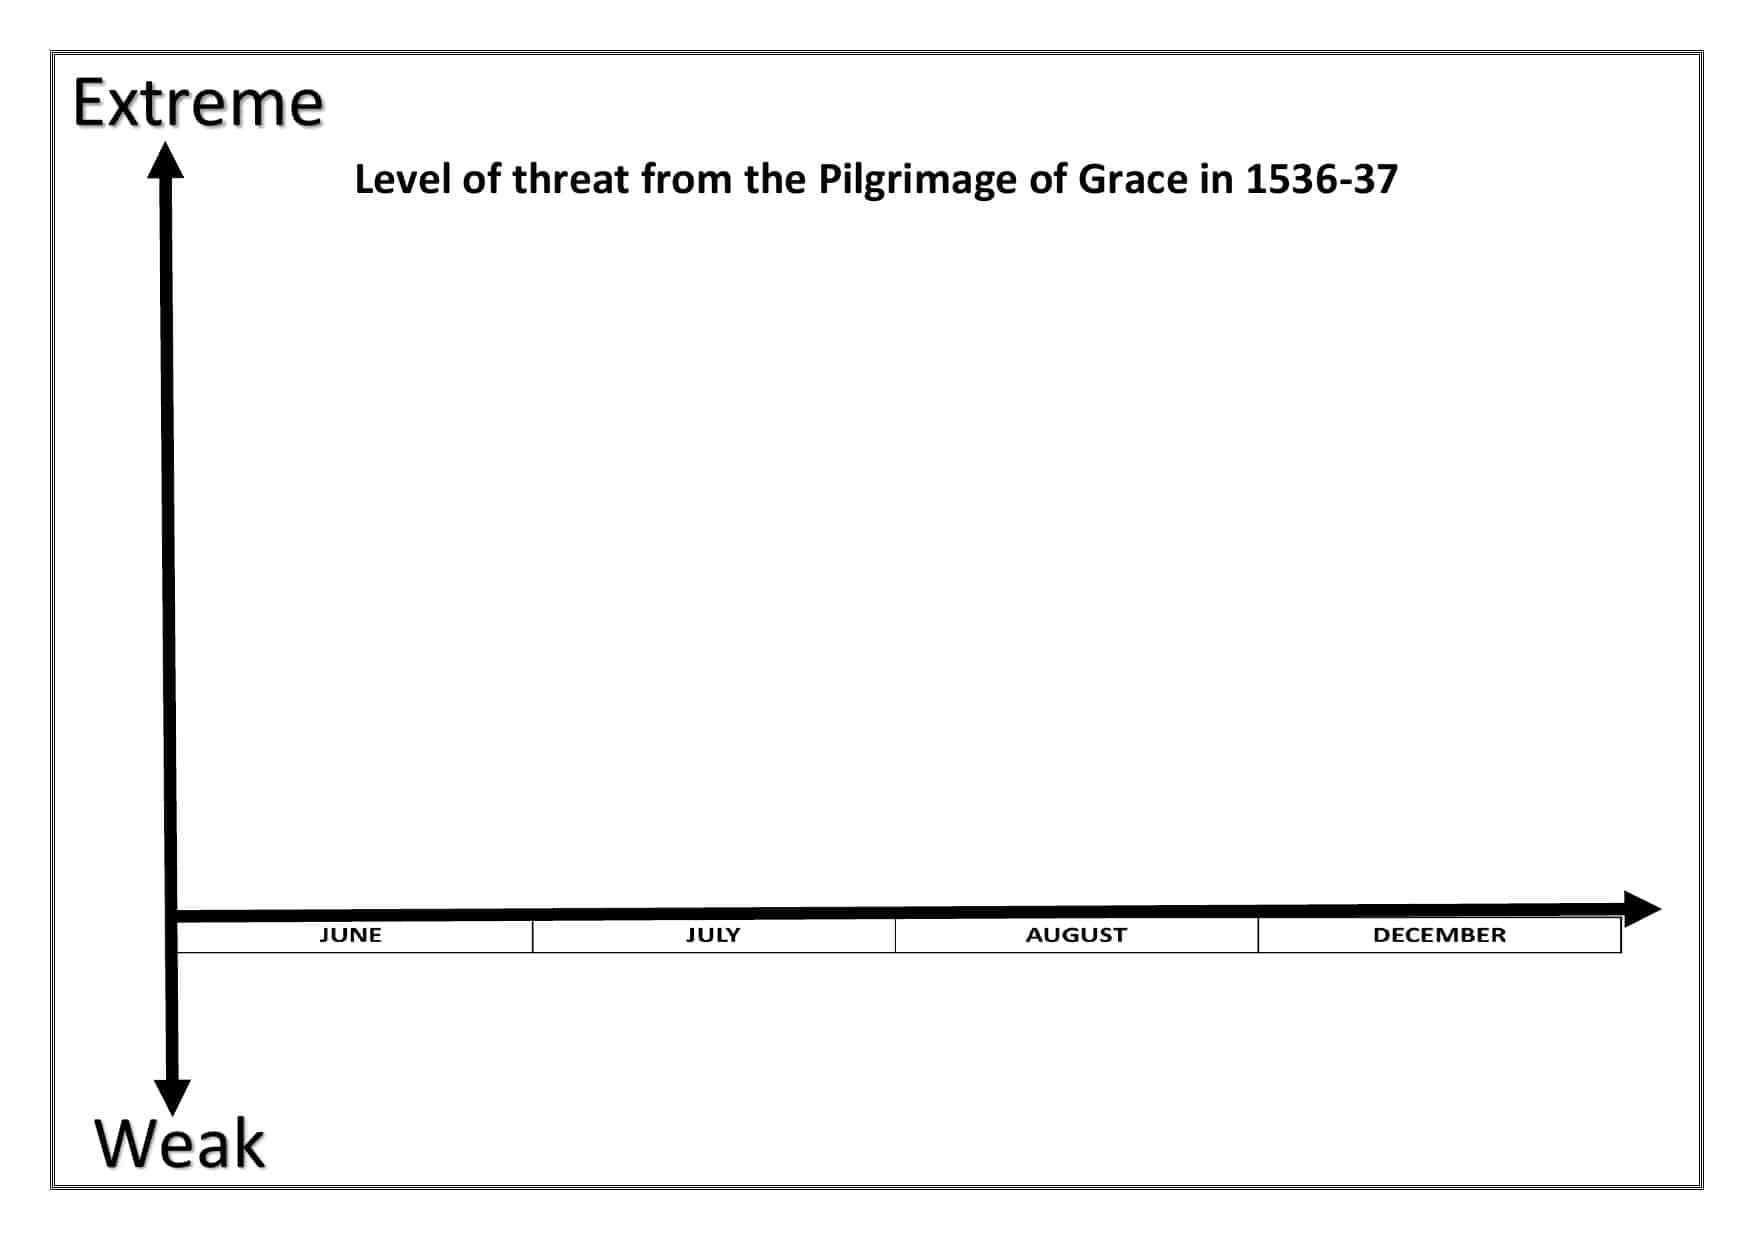 Level of threat from the Pilgrimage of Grace Chart | History Resources